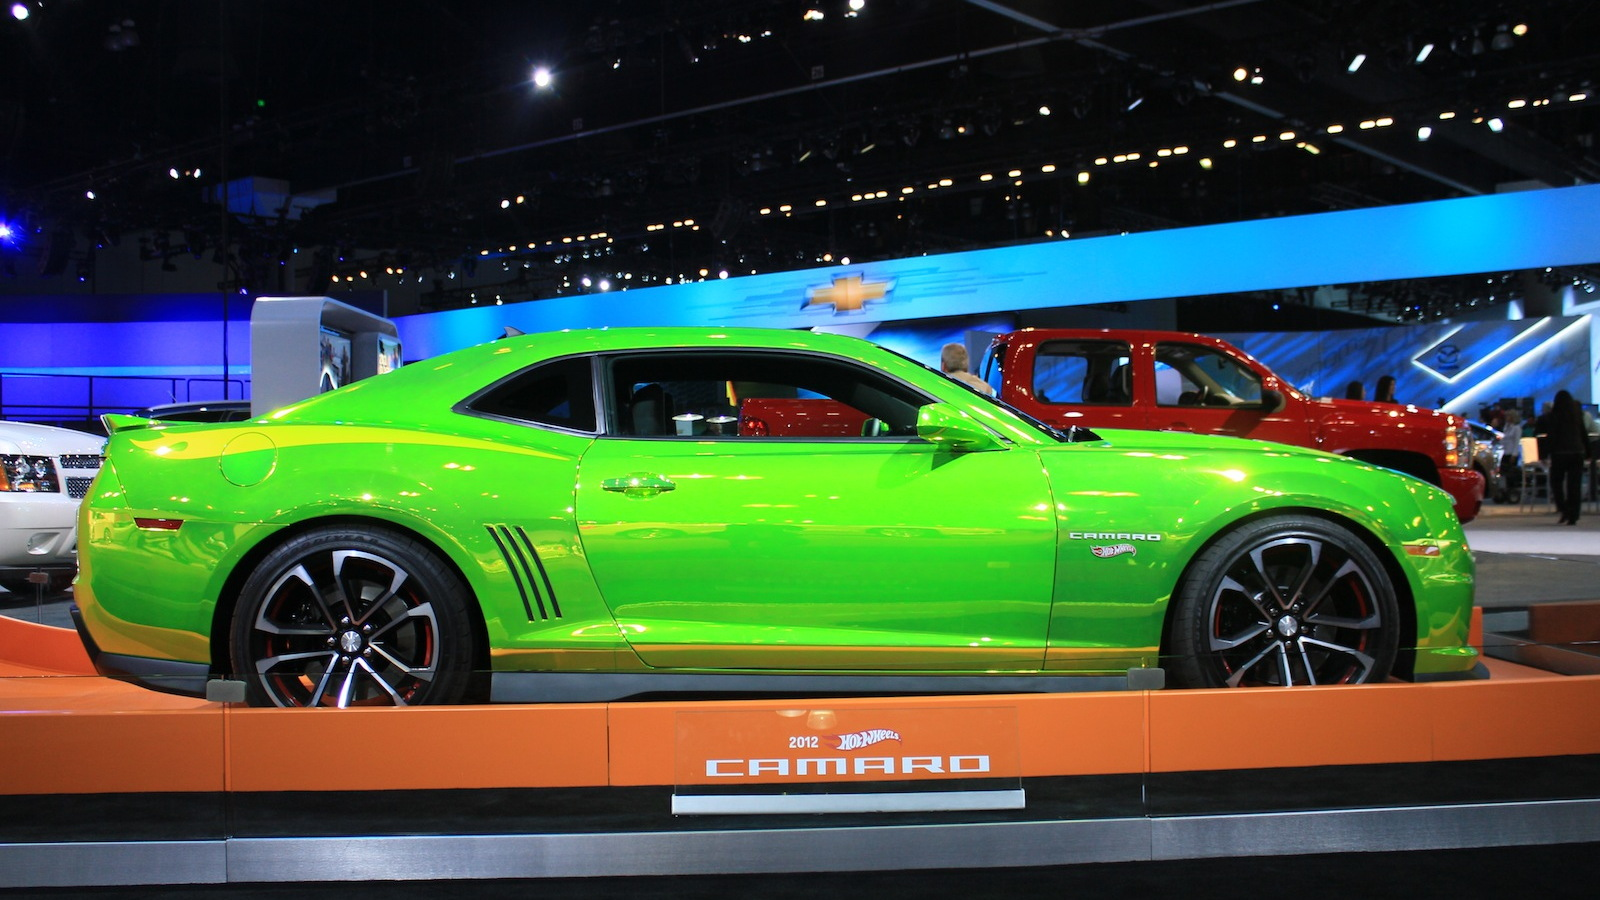 Hot Wheels Camaro at the 2011 Los Angeles Auto Show